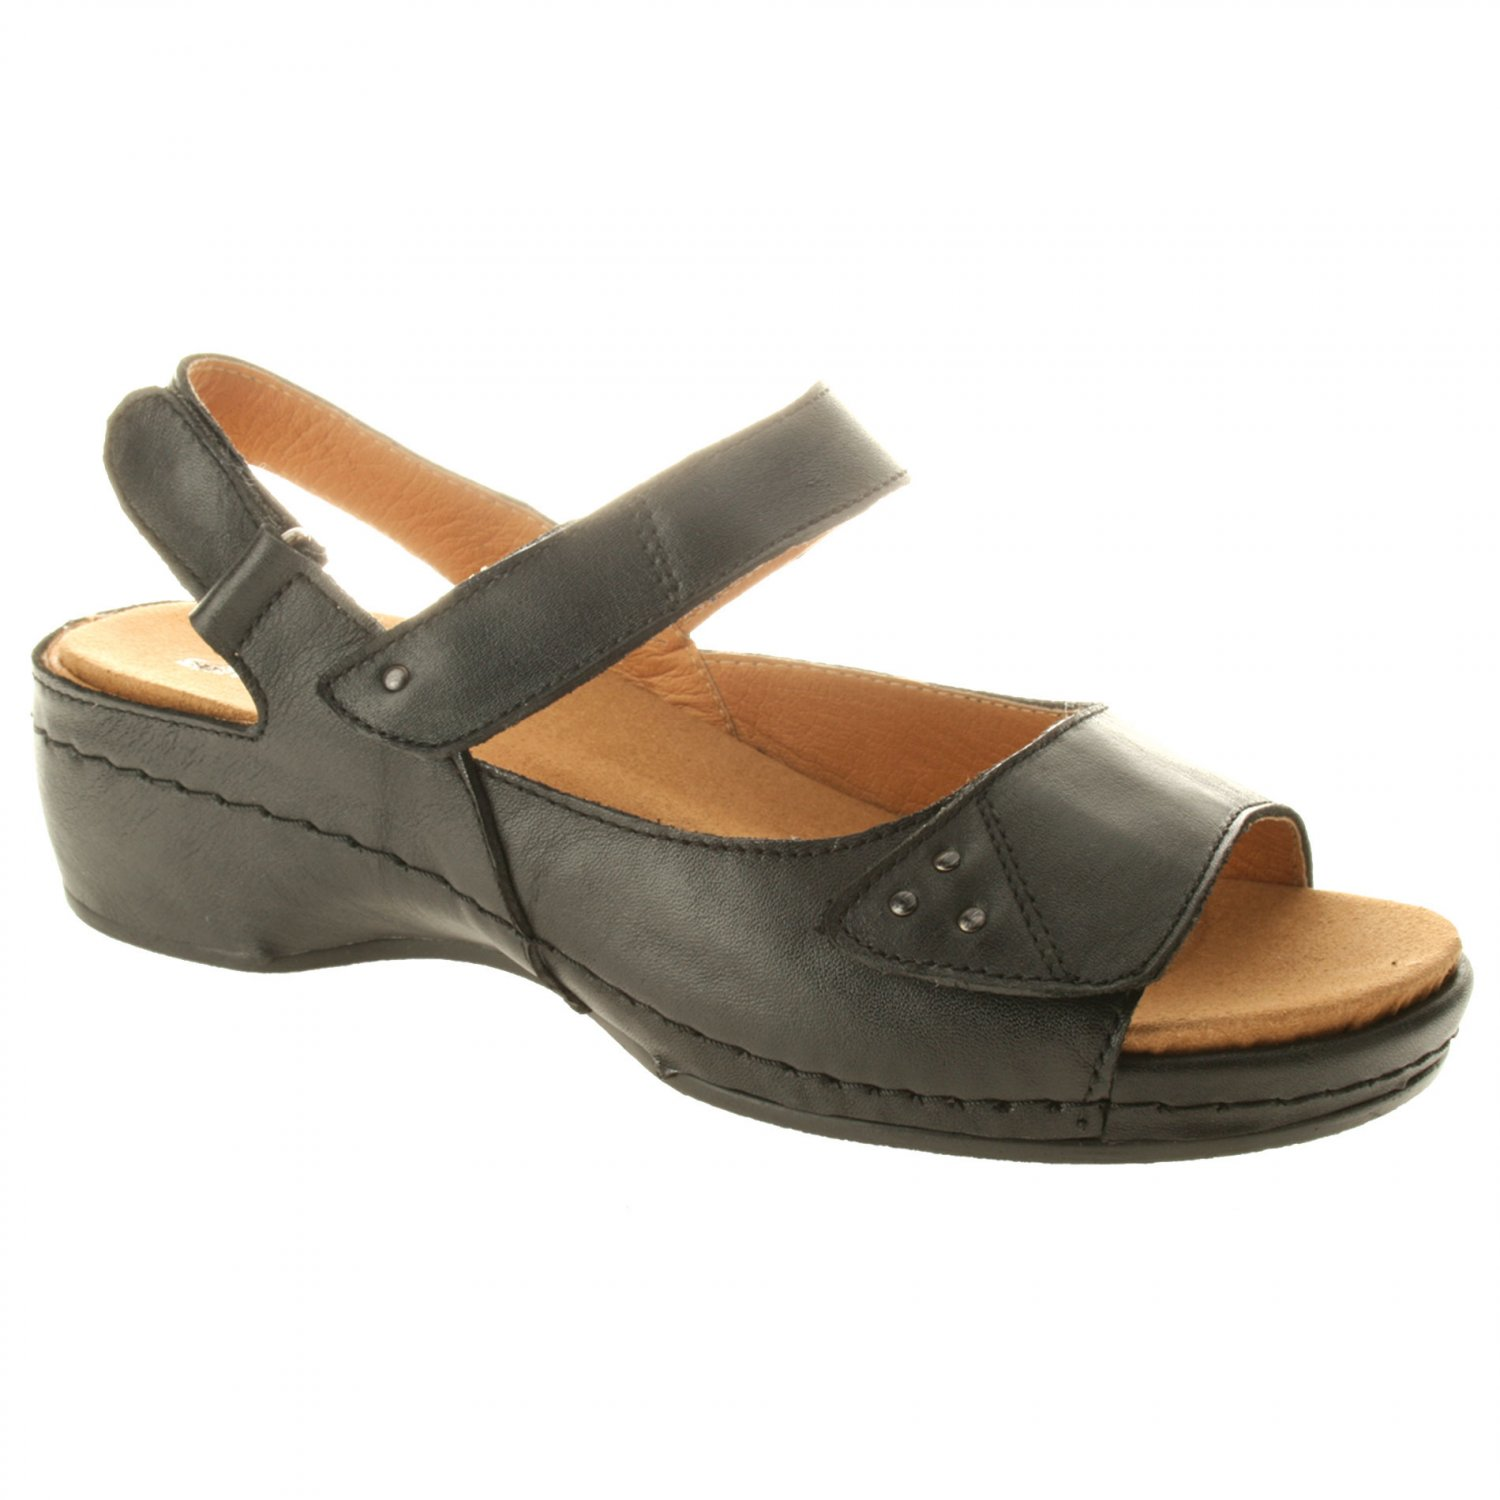 Spring Step JOLIET Sandals Shoes All Sizes & Colors $8